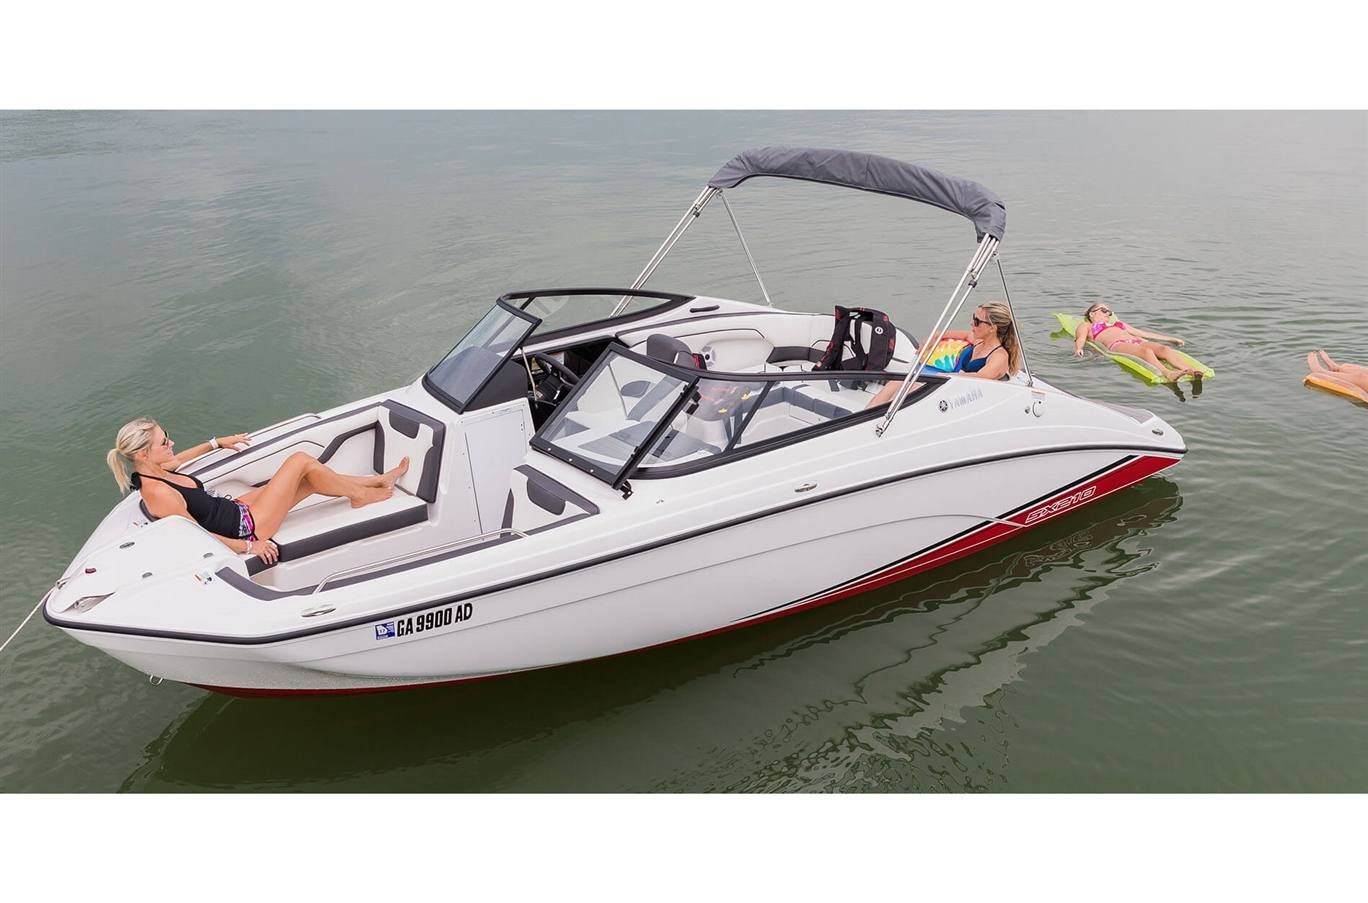 2018 Yamaha SX210 for sale in Osage Beach, MO. Lake of the Ozarks ...